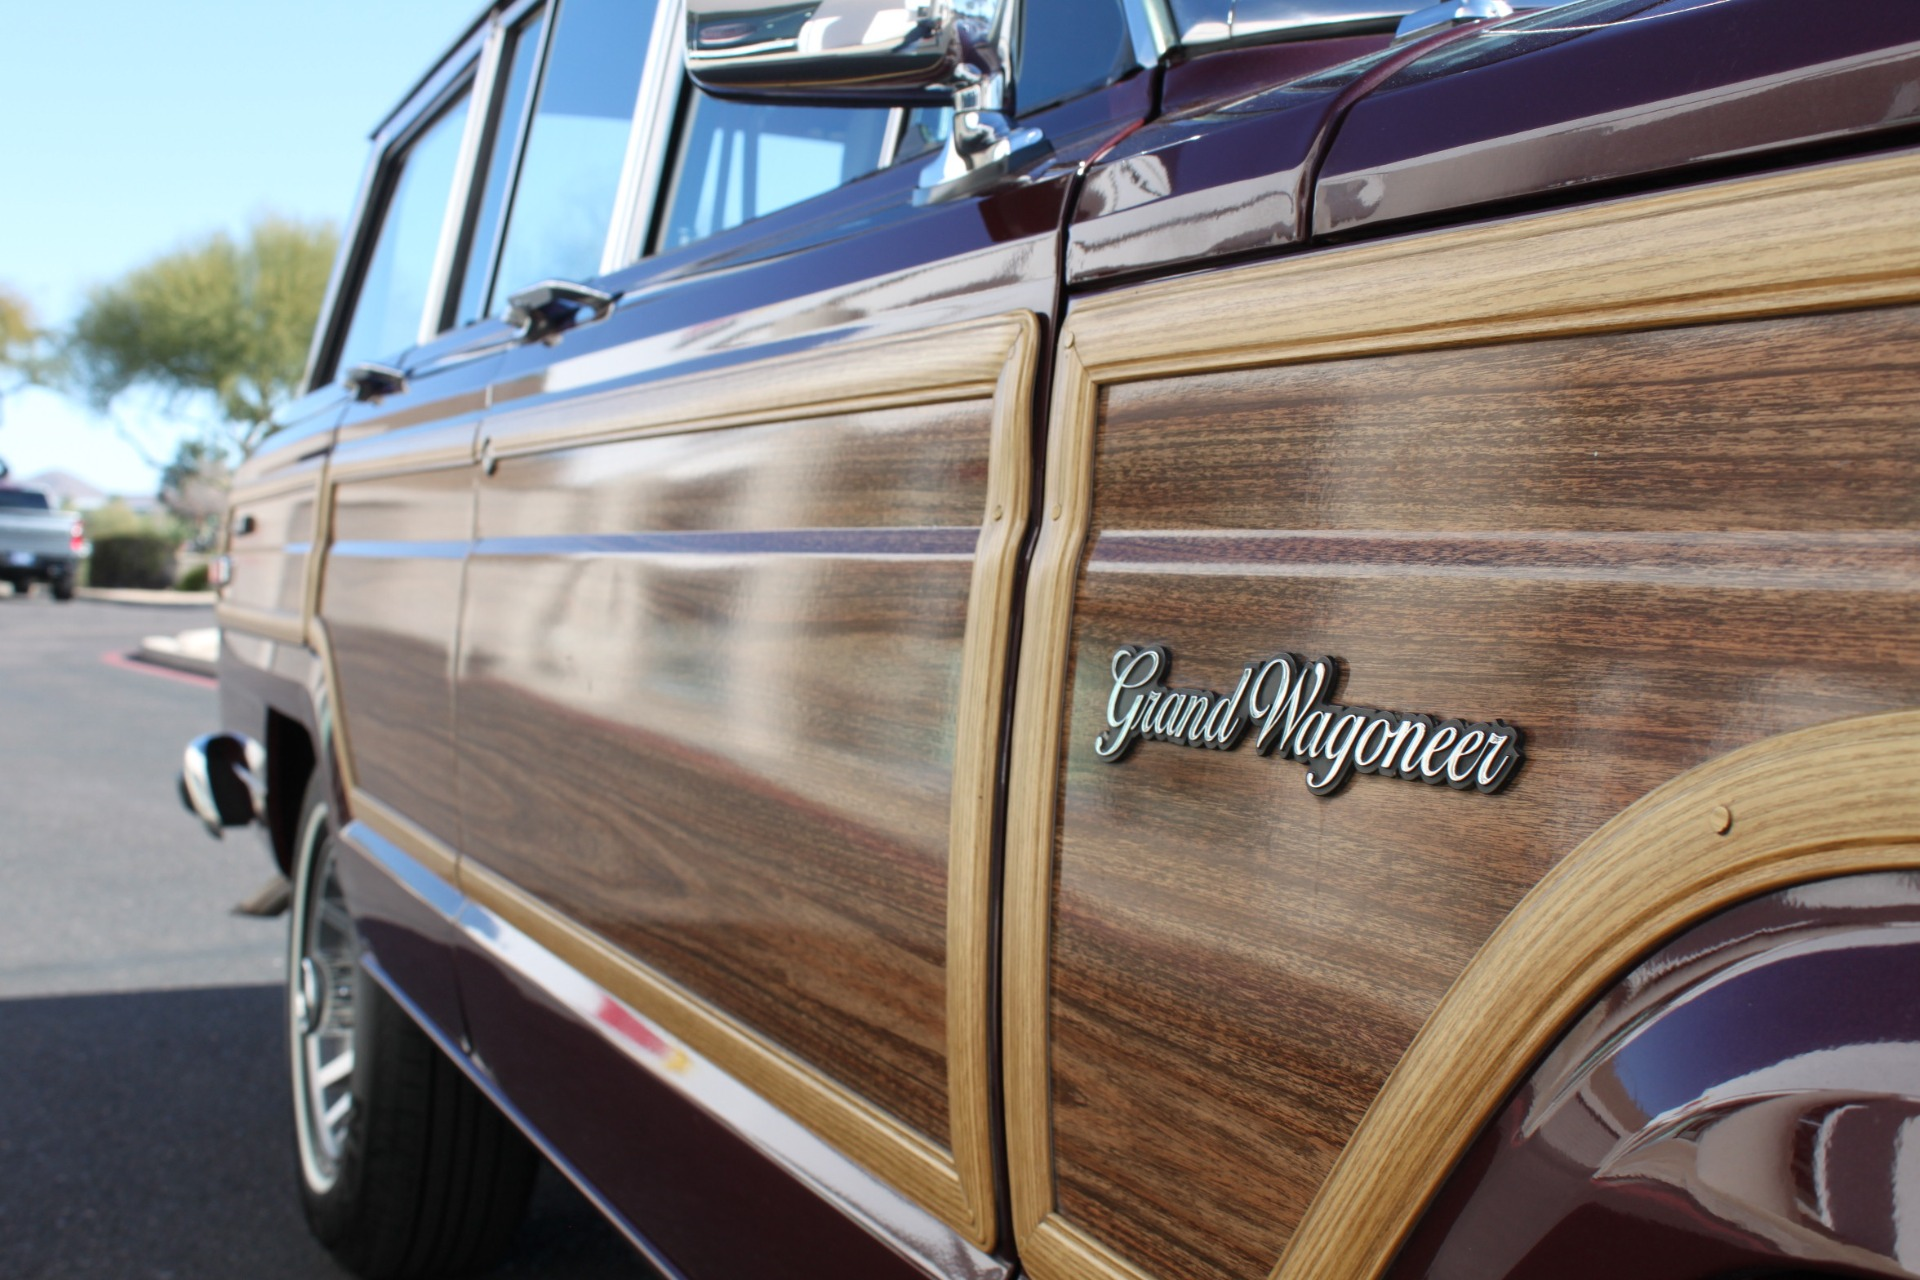 Used-1988-Jeep-Grand-Wagoneer-Ford